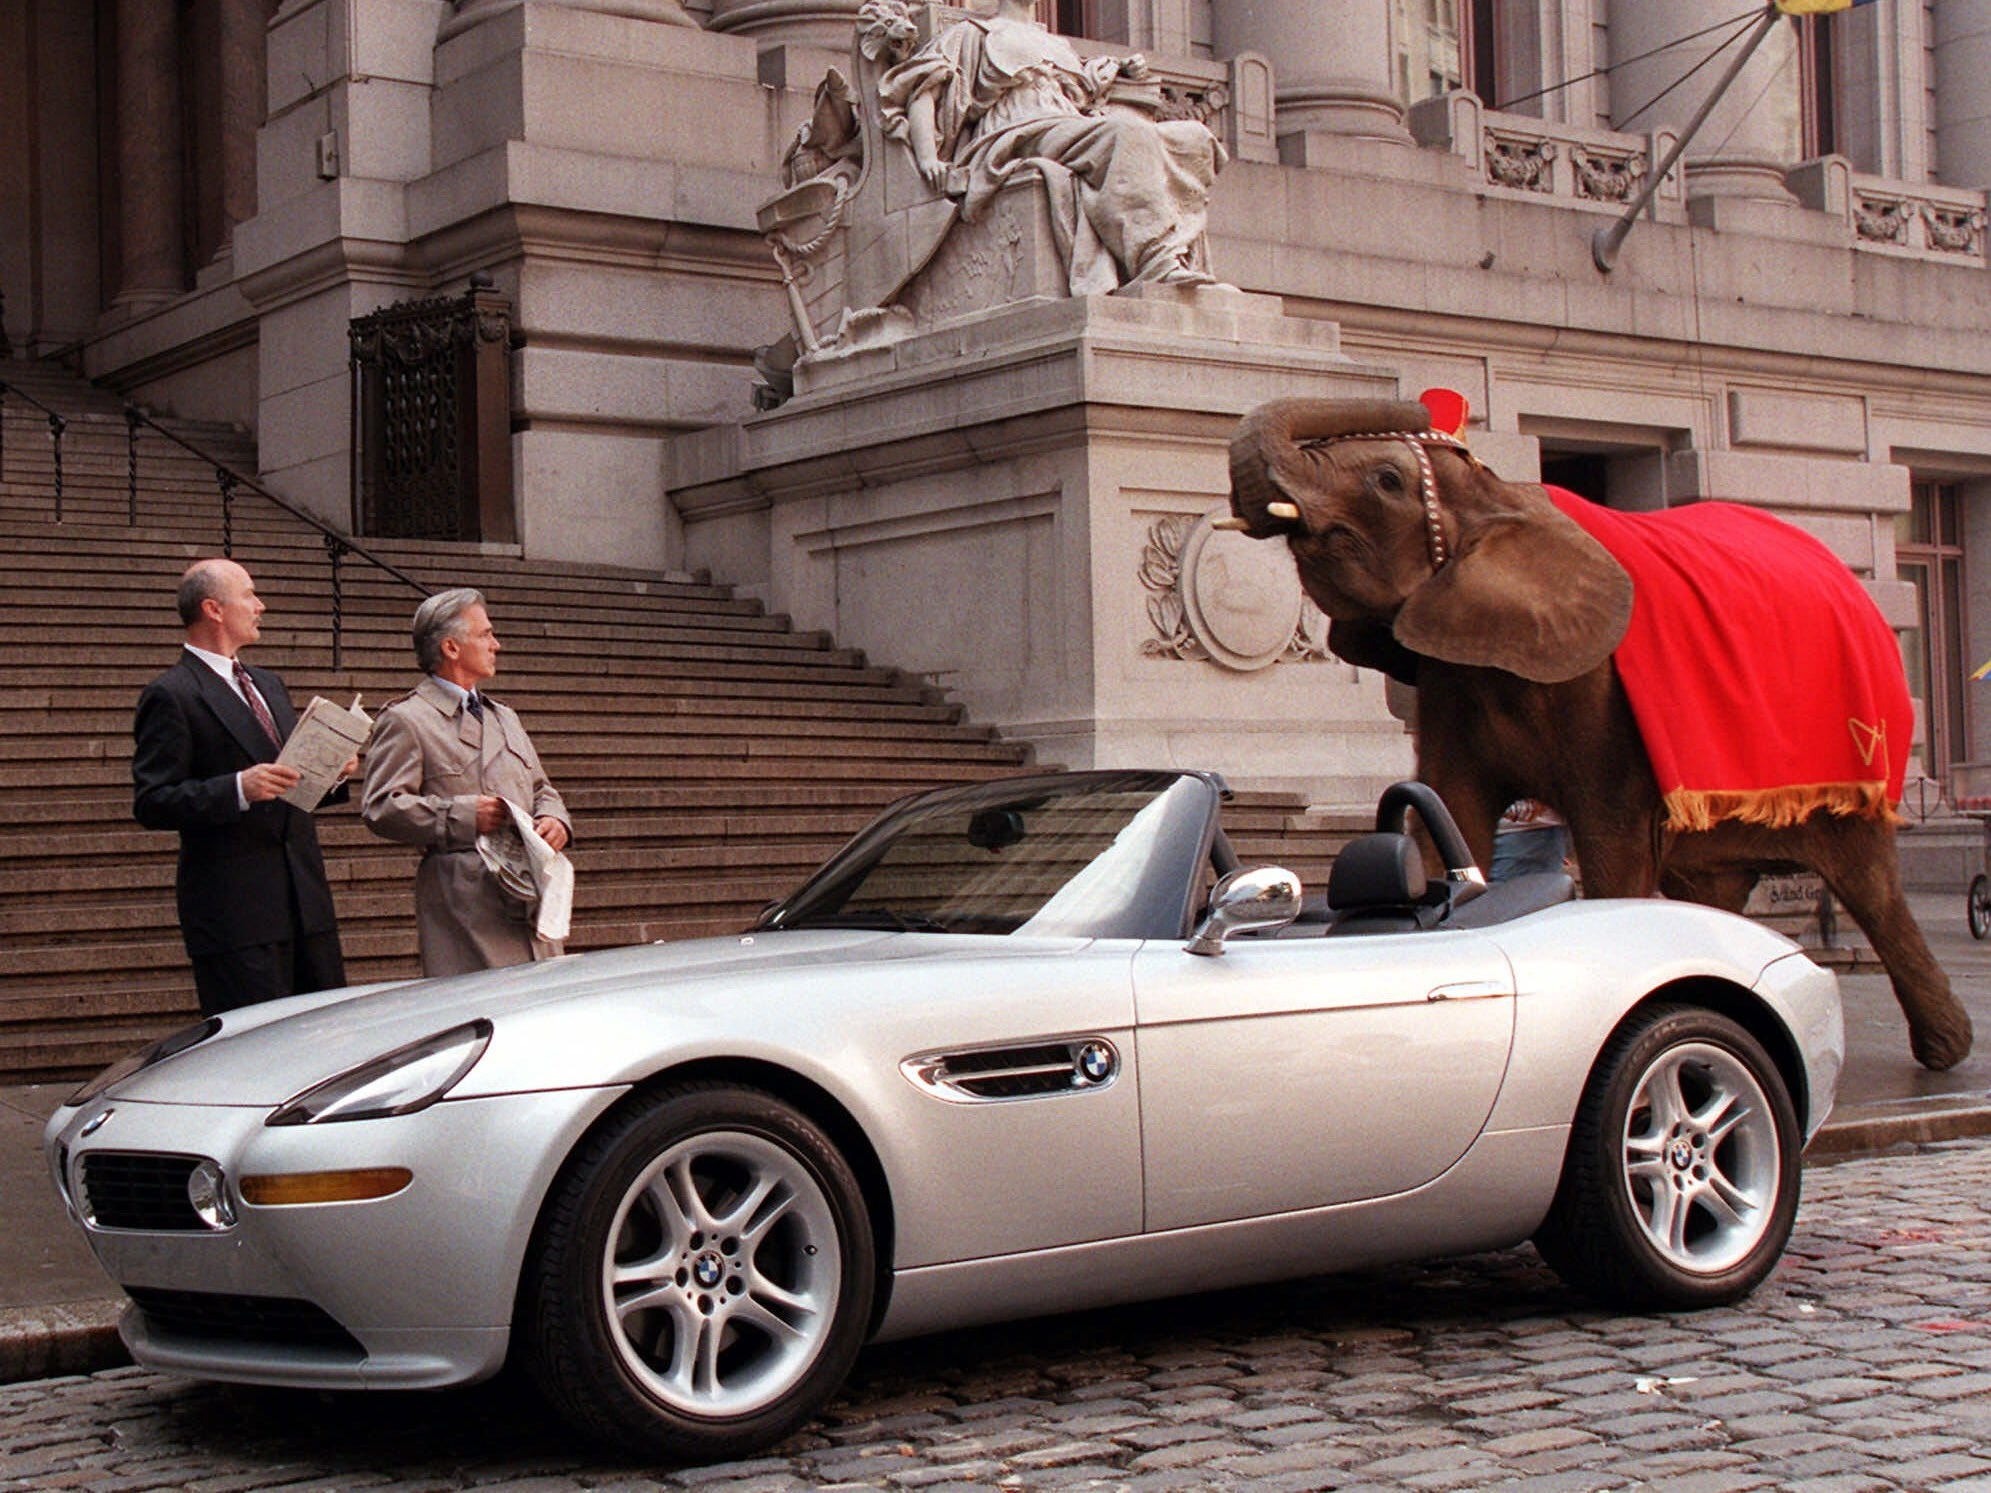 """A downtown Manhattan street is transformed Sunday, Aug. 29, 1999, into a European setting, fully equipped for a car commercial with spies, an elephant, and the new BMW Z8, the car featured in the James Bond movie """"The World is Not Enough,"""" which will be released in theaters nationwide in November. Amy the elephant and actors Ed Hyland, left, and Dennis Parlato film a take for a commercial being released spring 2000 in North America, featuring the new BMW Z8.  (AP Photo/BMW, Stuart Ramson) ORG XMIT: NYR105 [Via MerlinFTP Drop]"""